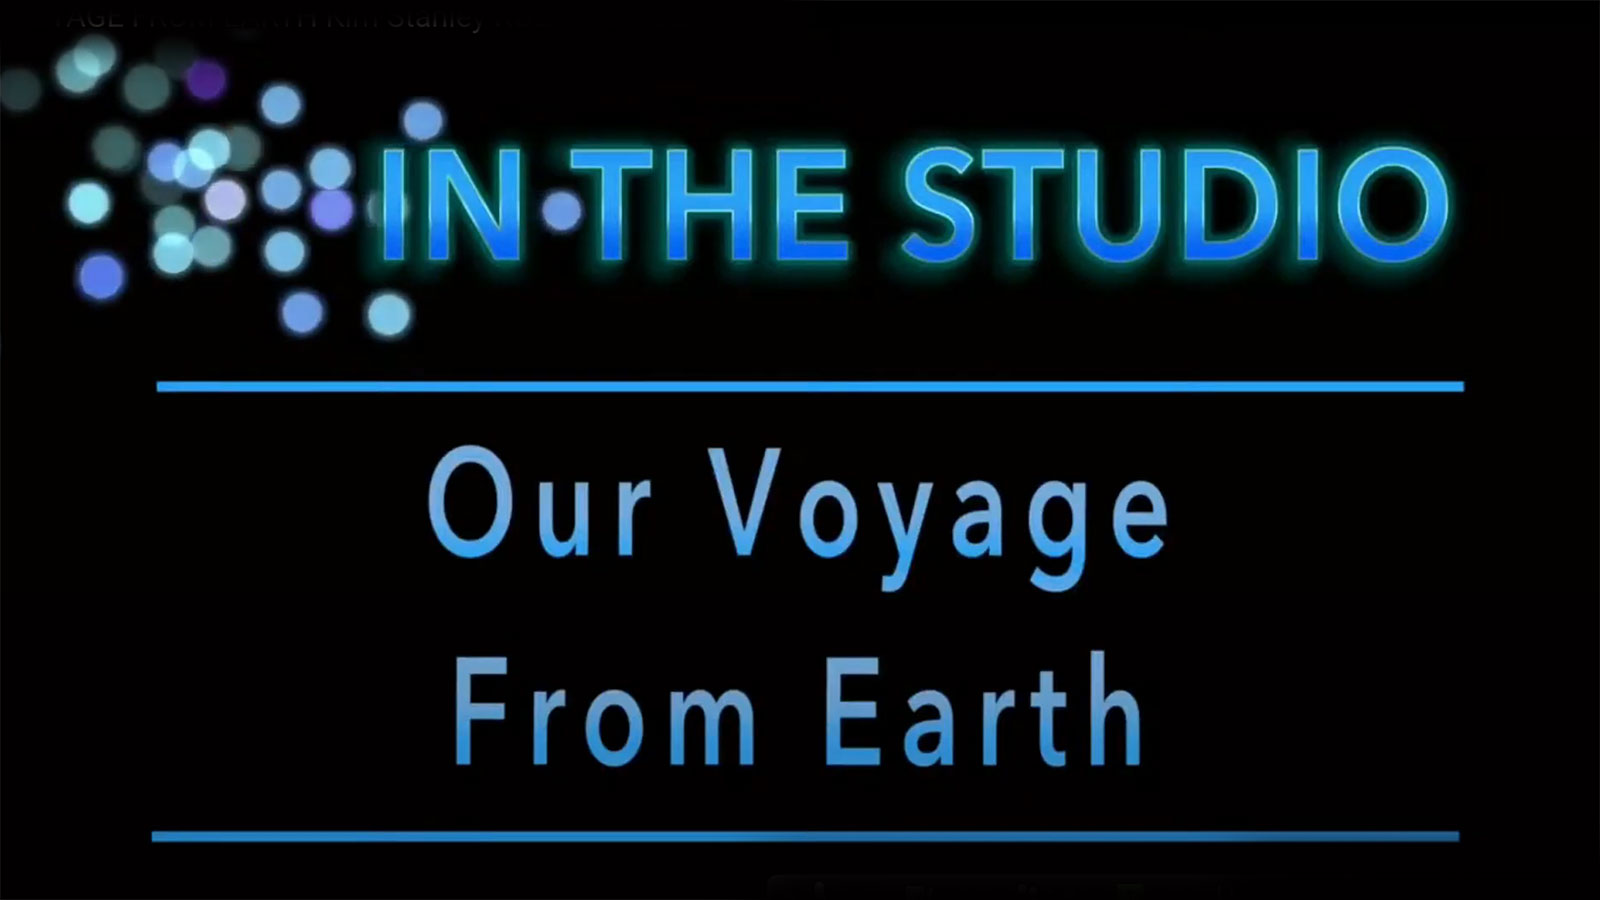 Our Voyage from Earth